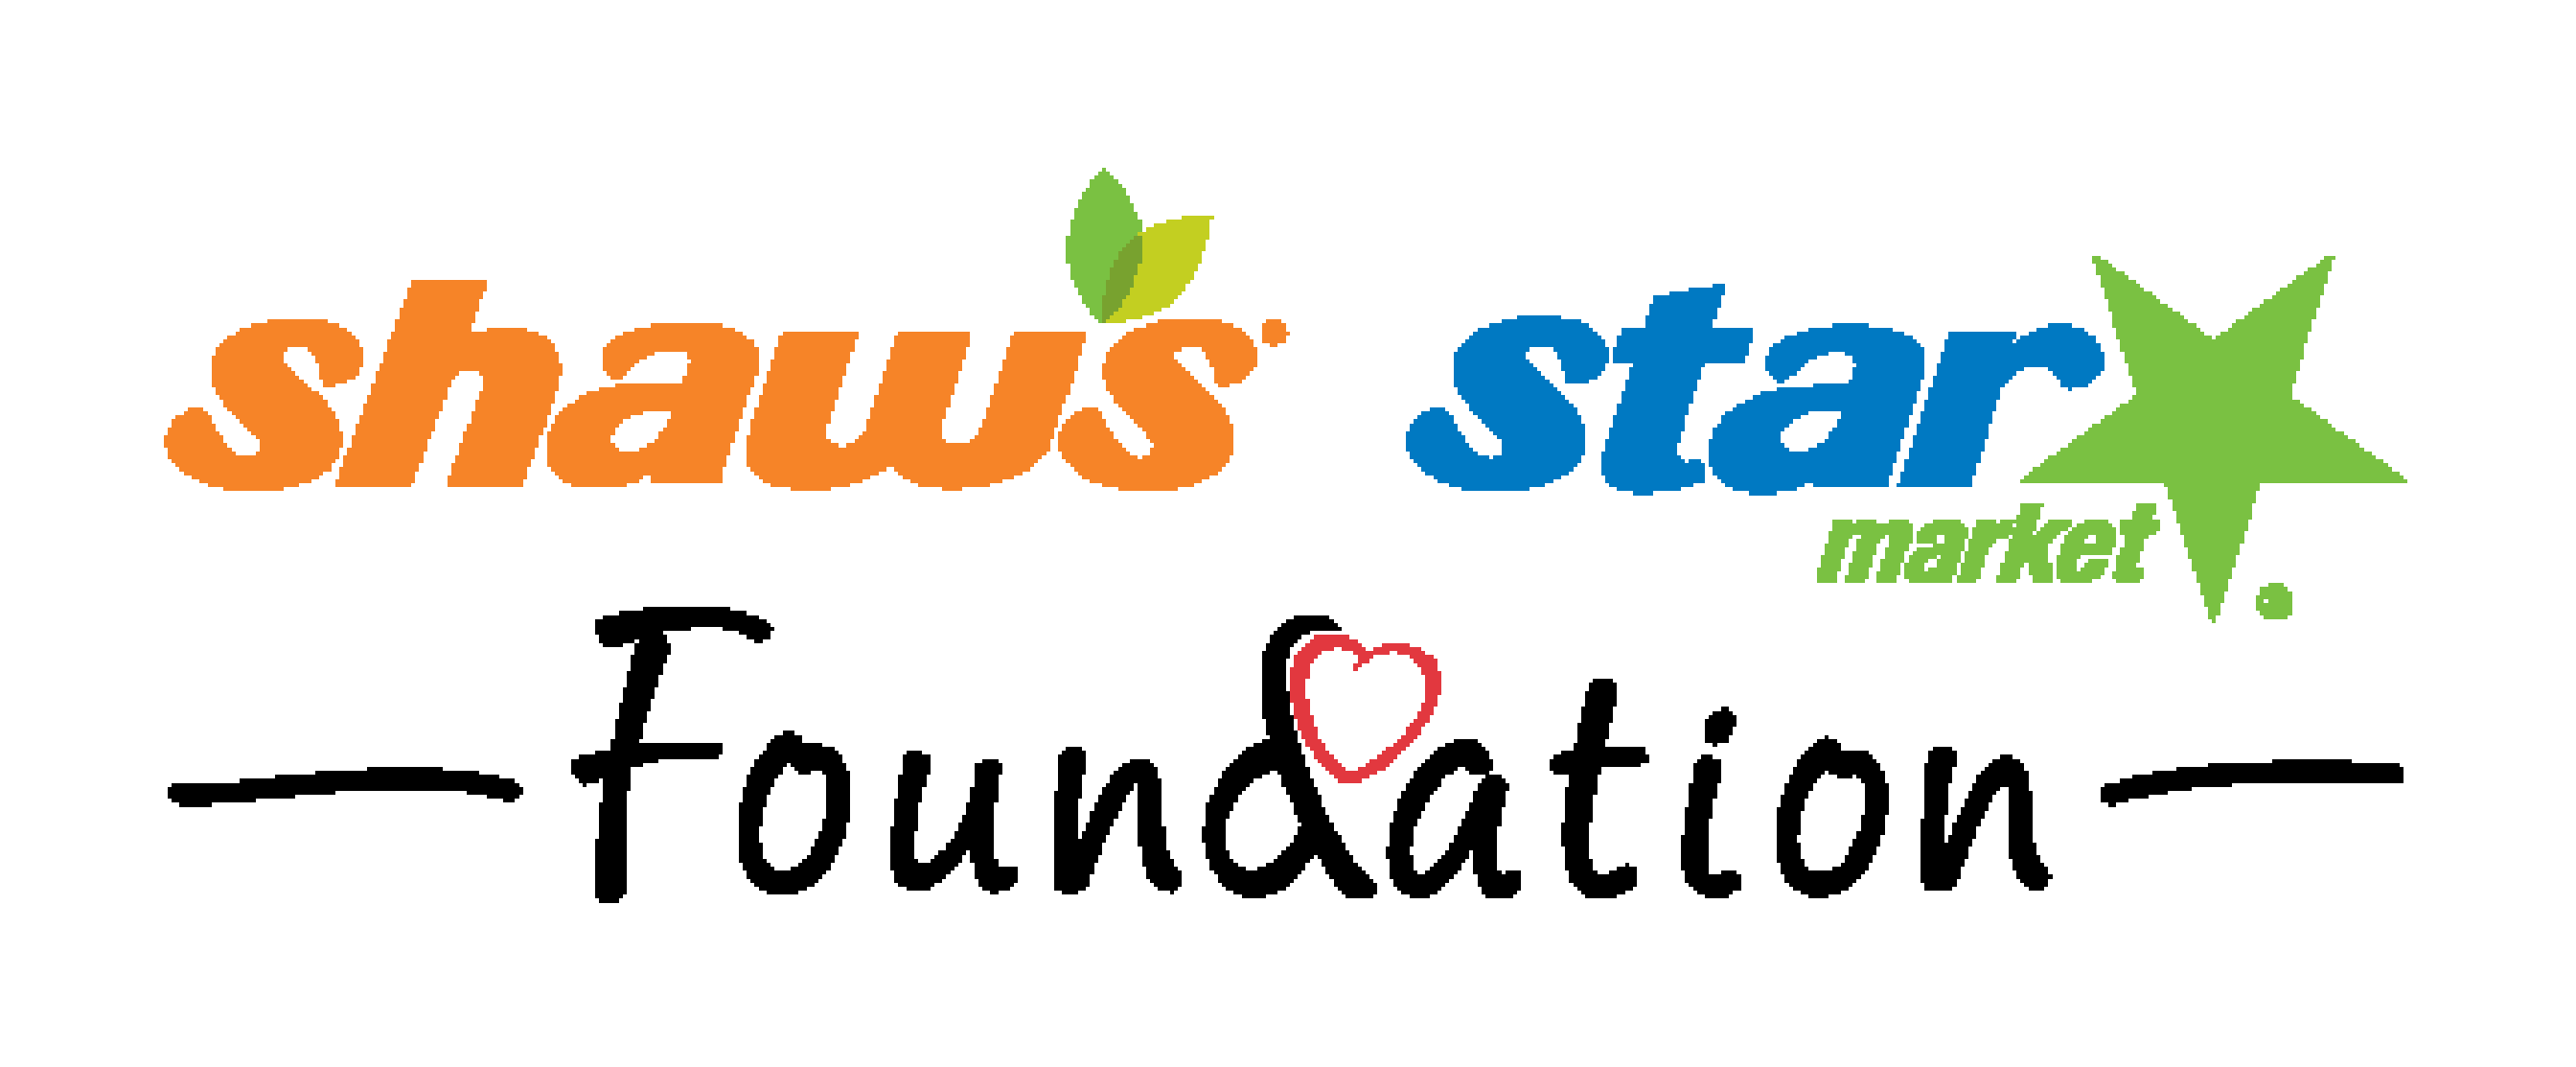 Shaws and Star Market Foundation